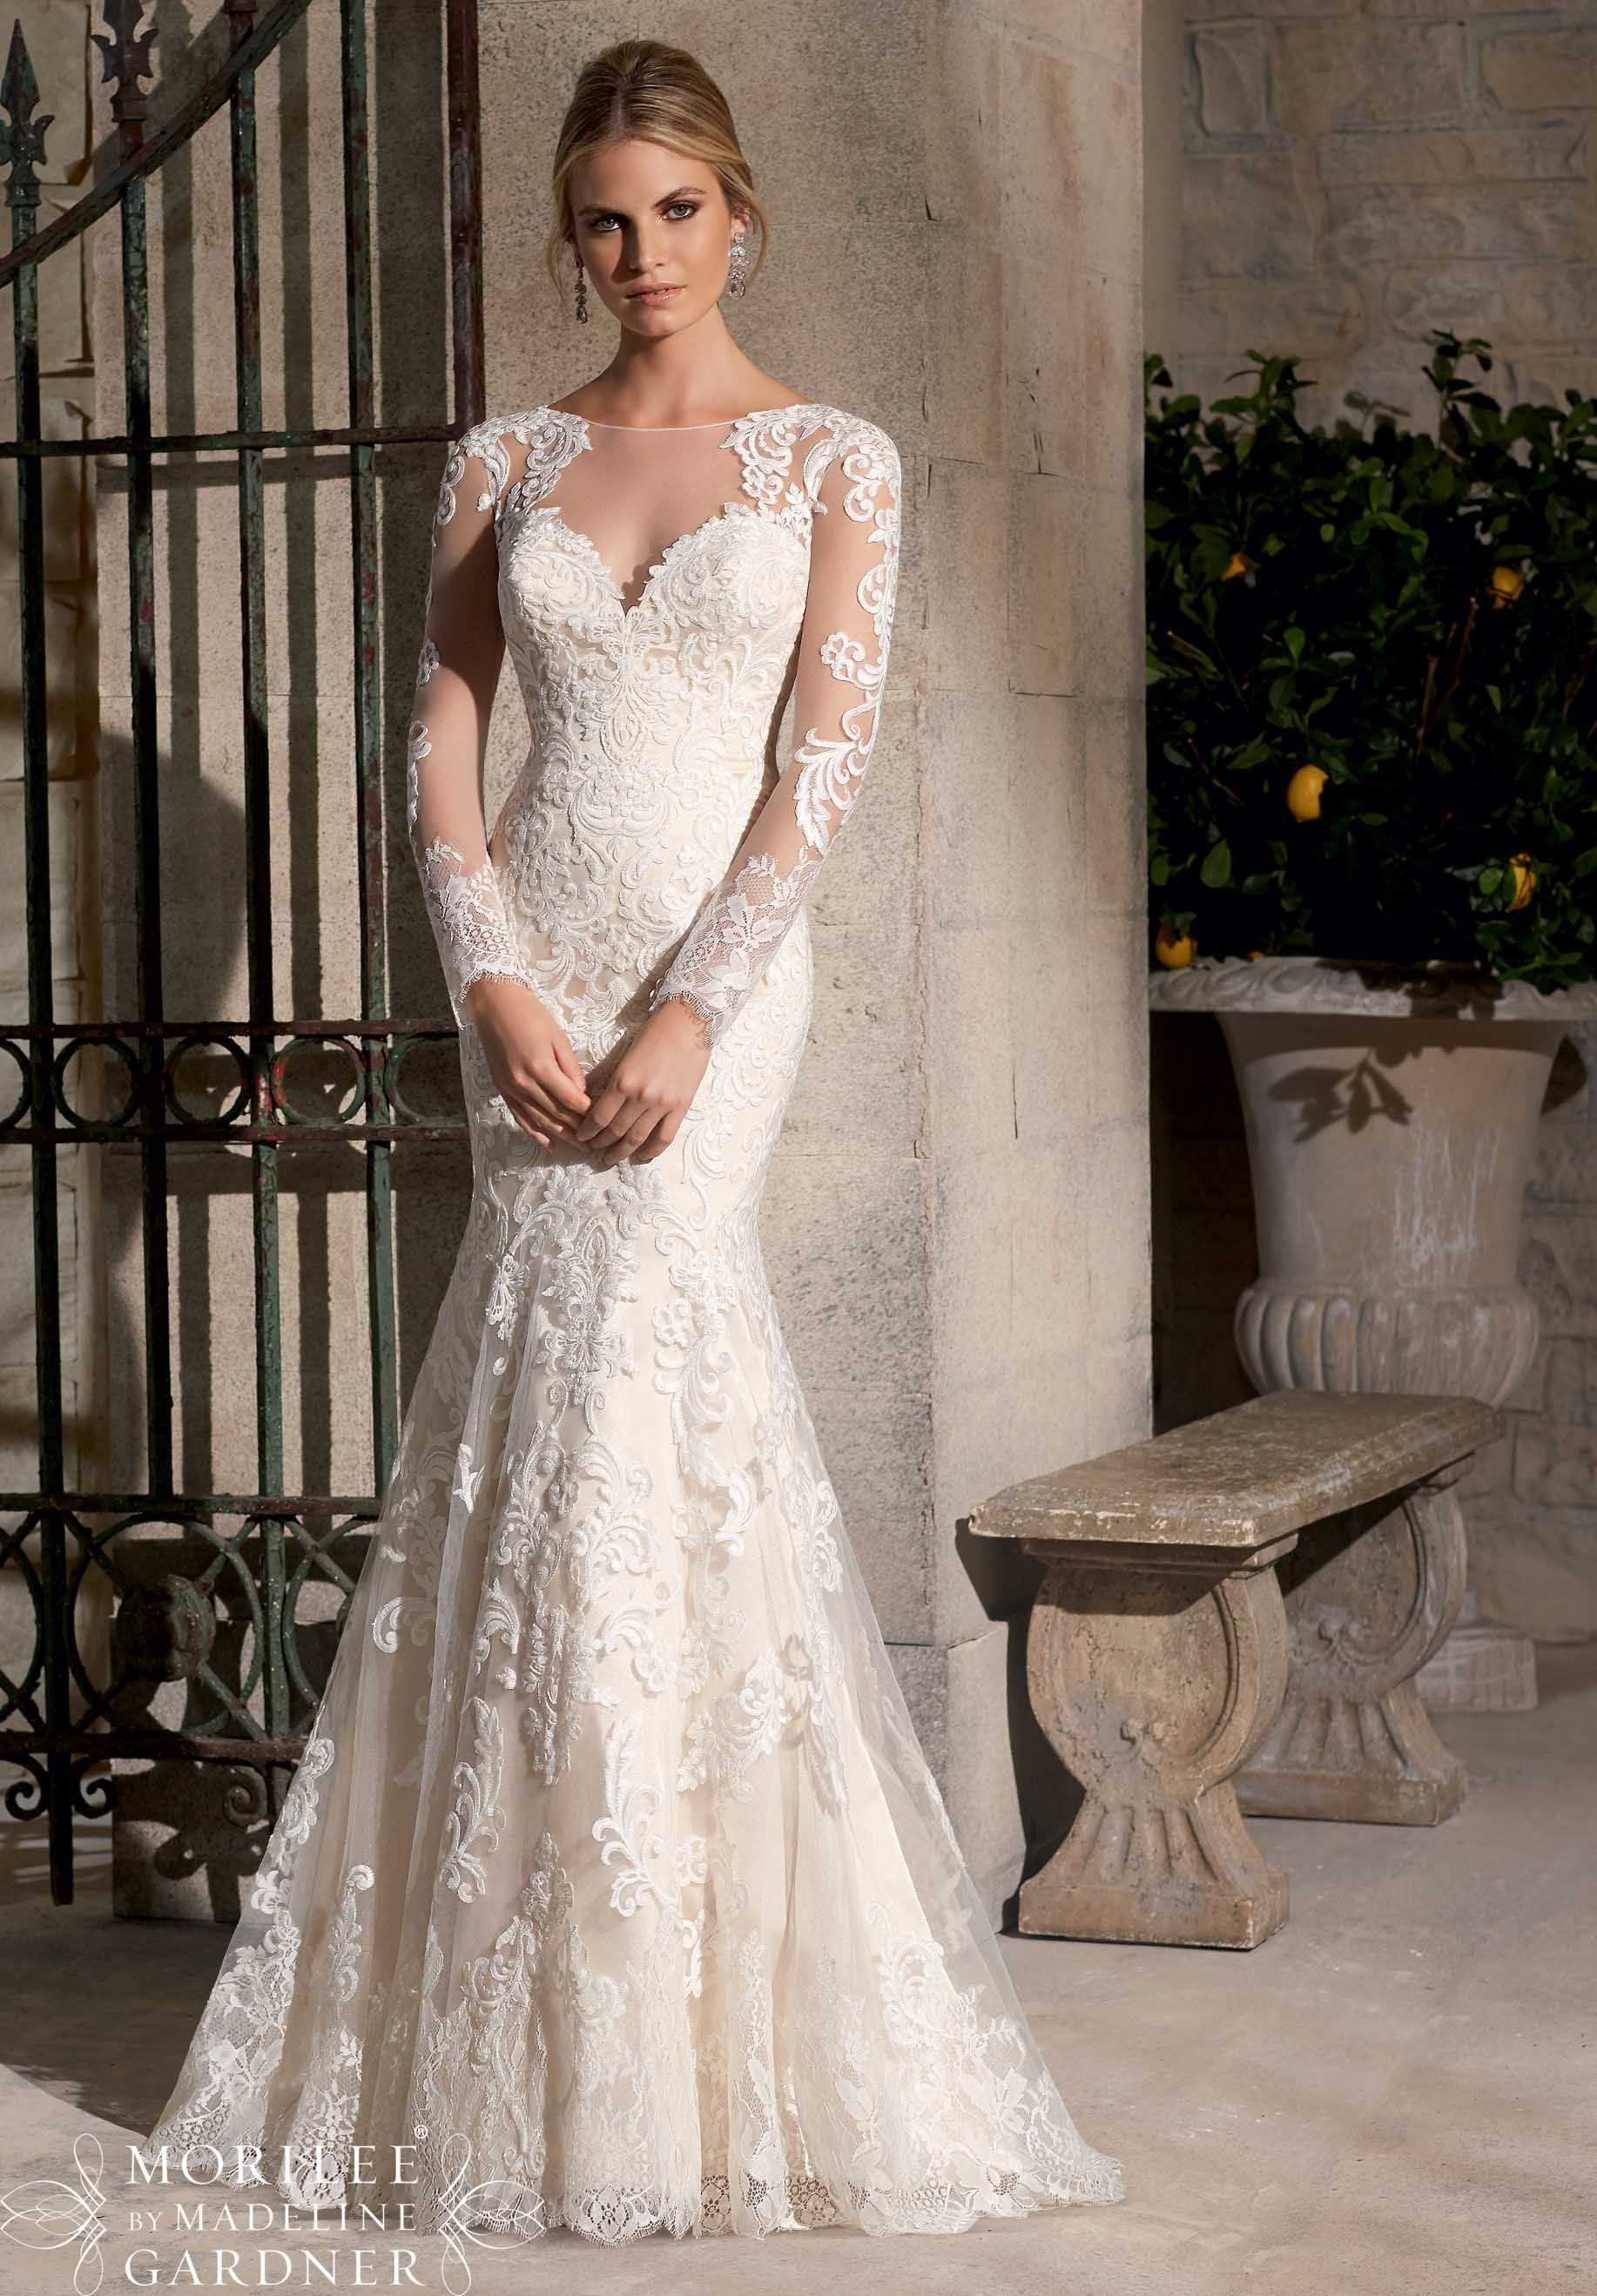 Come in to see this beautiful Mori Lee gown.  Wedding Dresses and Wedding Gowns by Morilee featuring Majestic Embroidered Appliques Combined with Chantilly Lace on Net with Wide Hemline